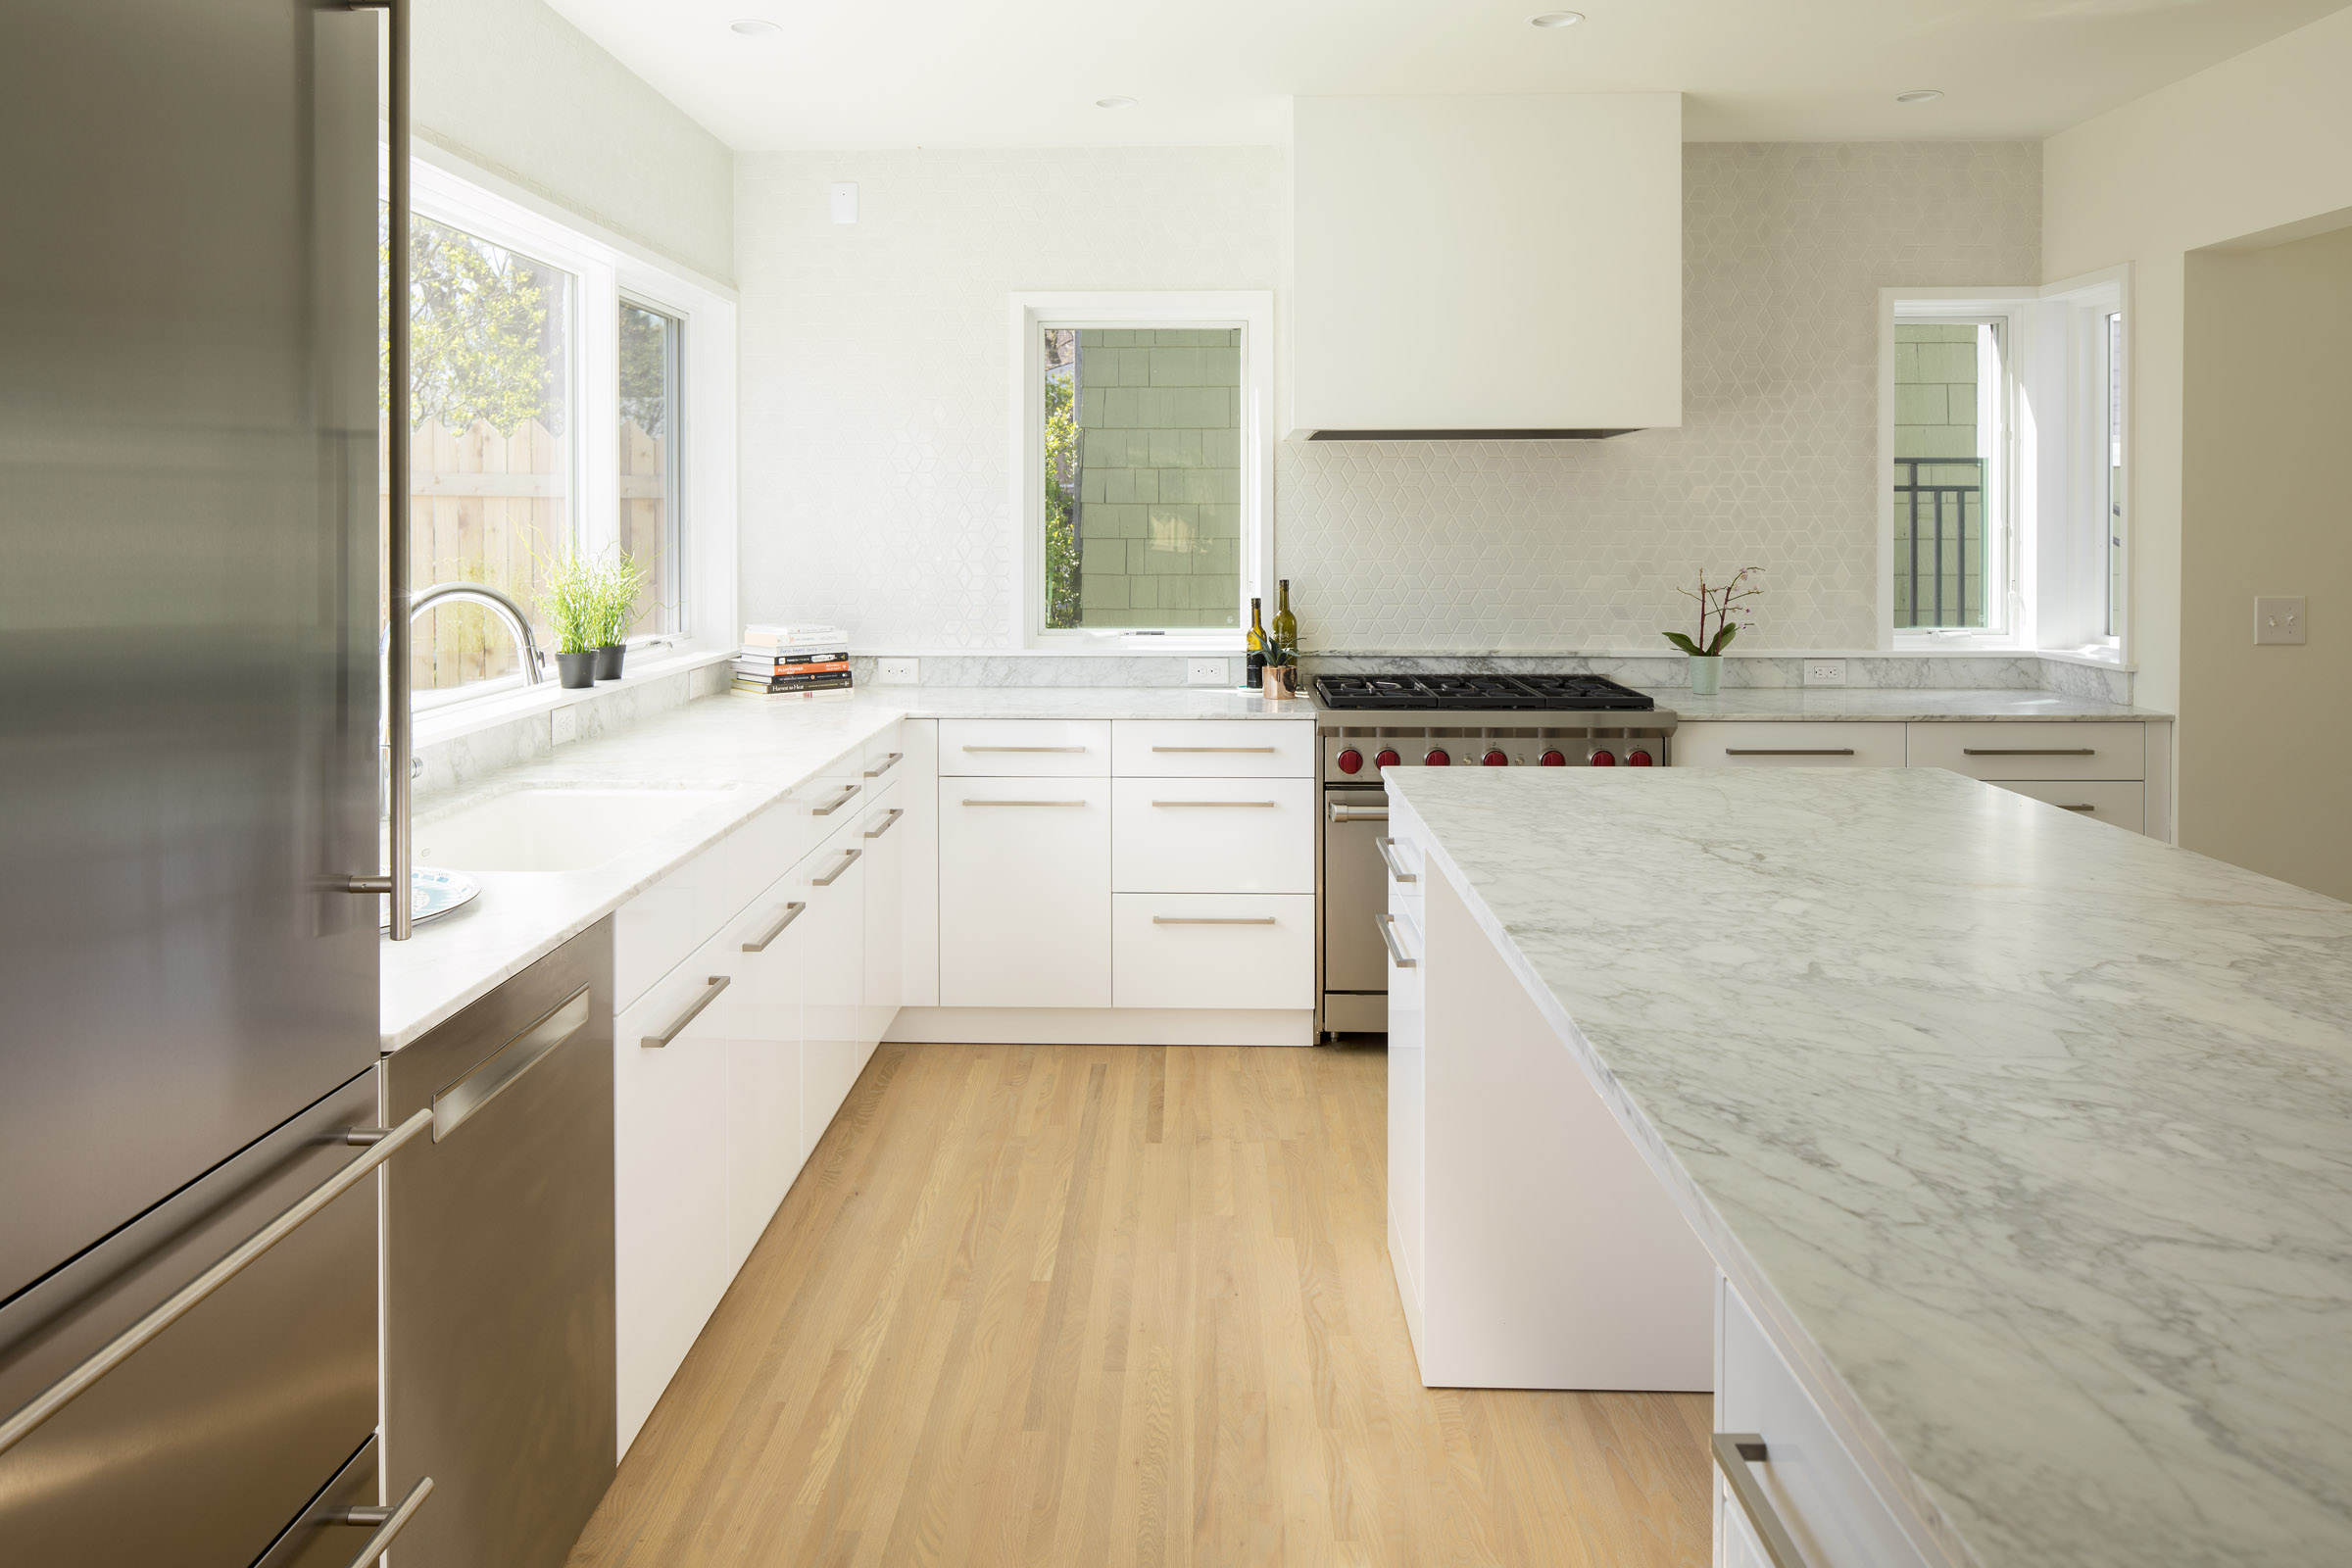 Modern white kitchen remodel with marble countertops and tile backsplash